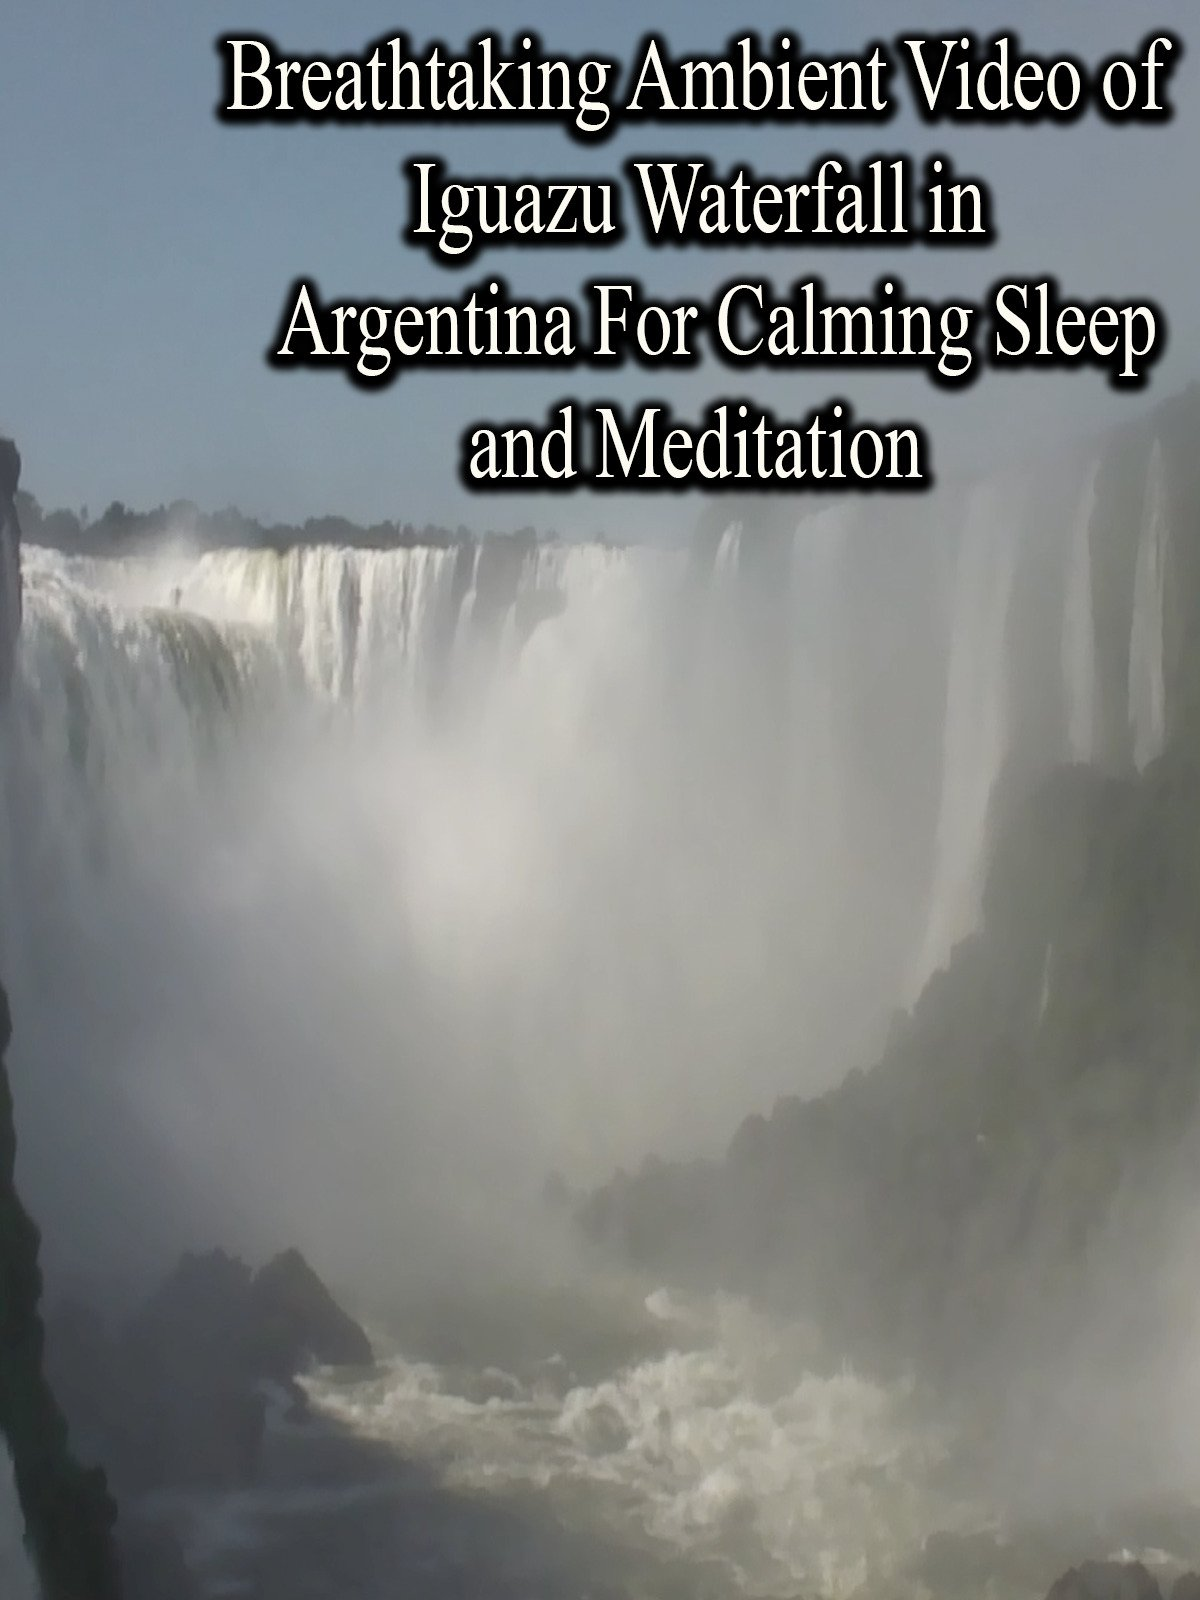 Breathtaking Ambient Video of Iguazu Waterfall in Argentina for Calming Sleep and meditation